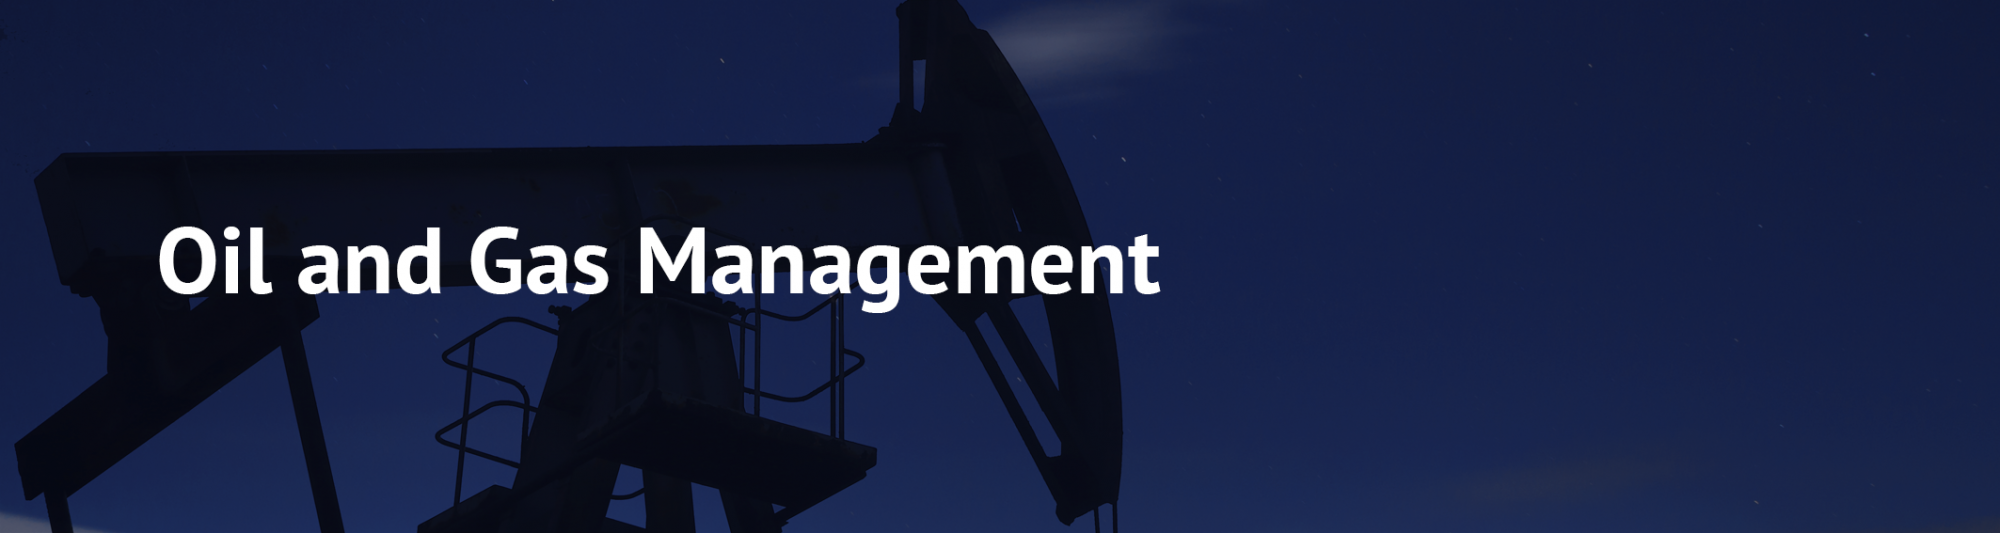 Oil and Gas Management.png